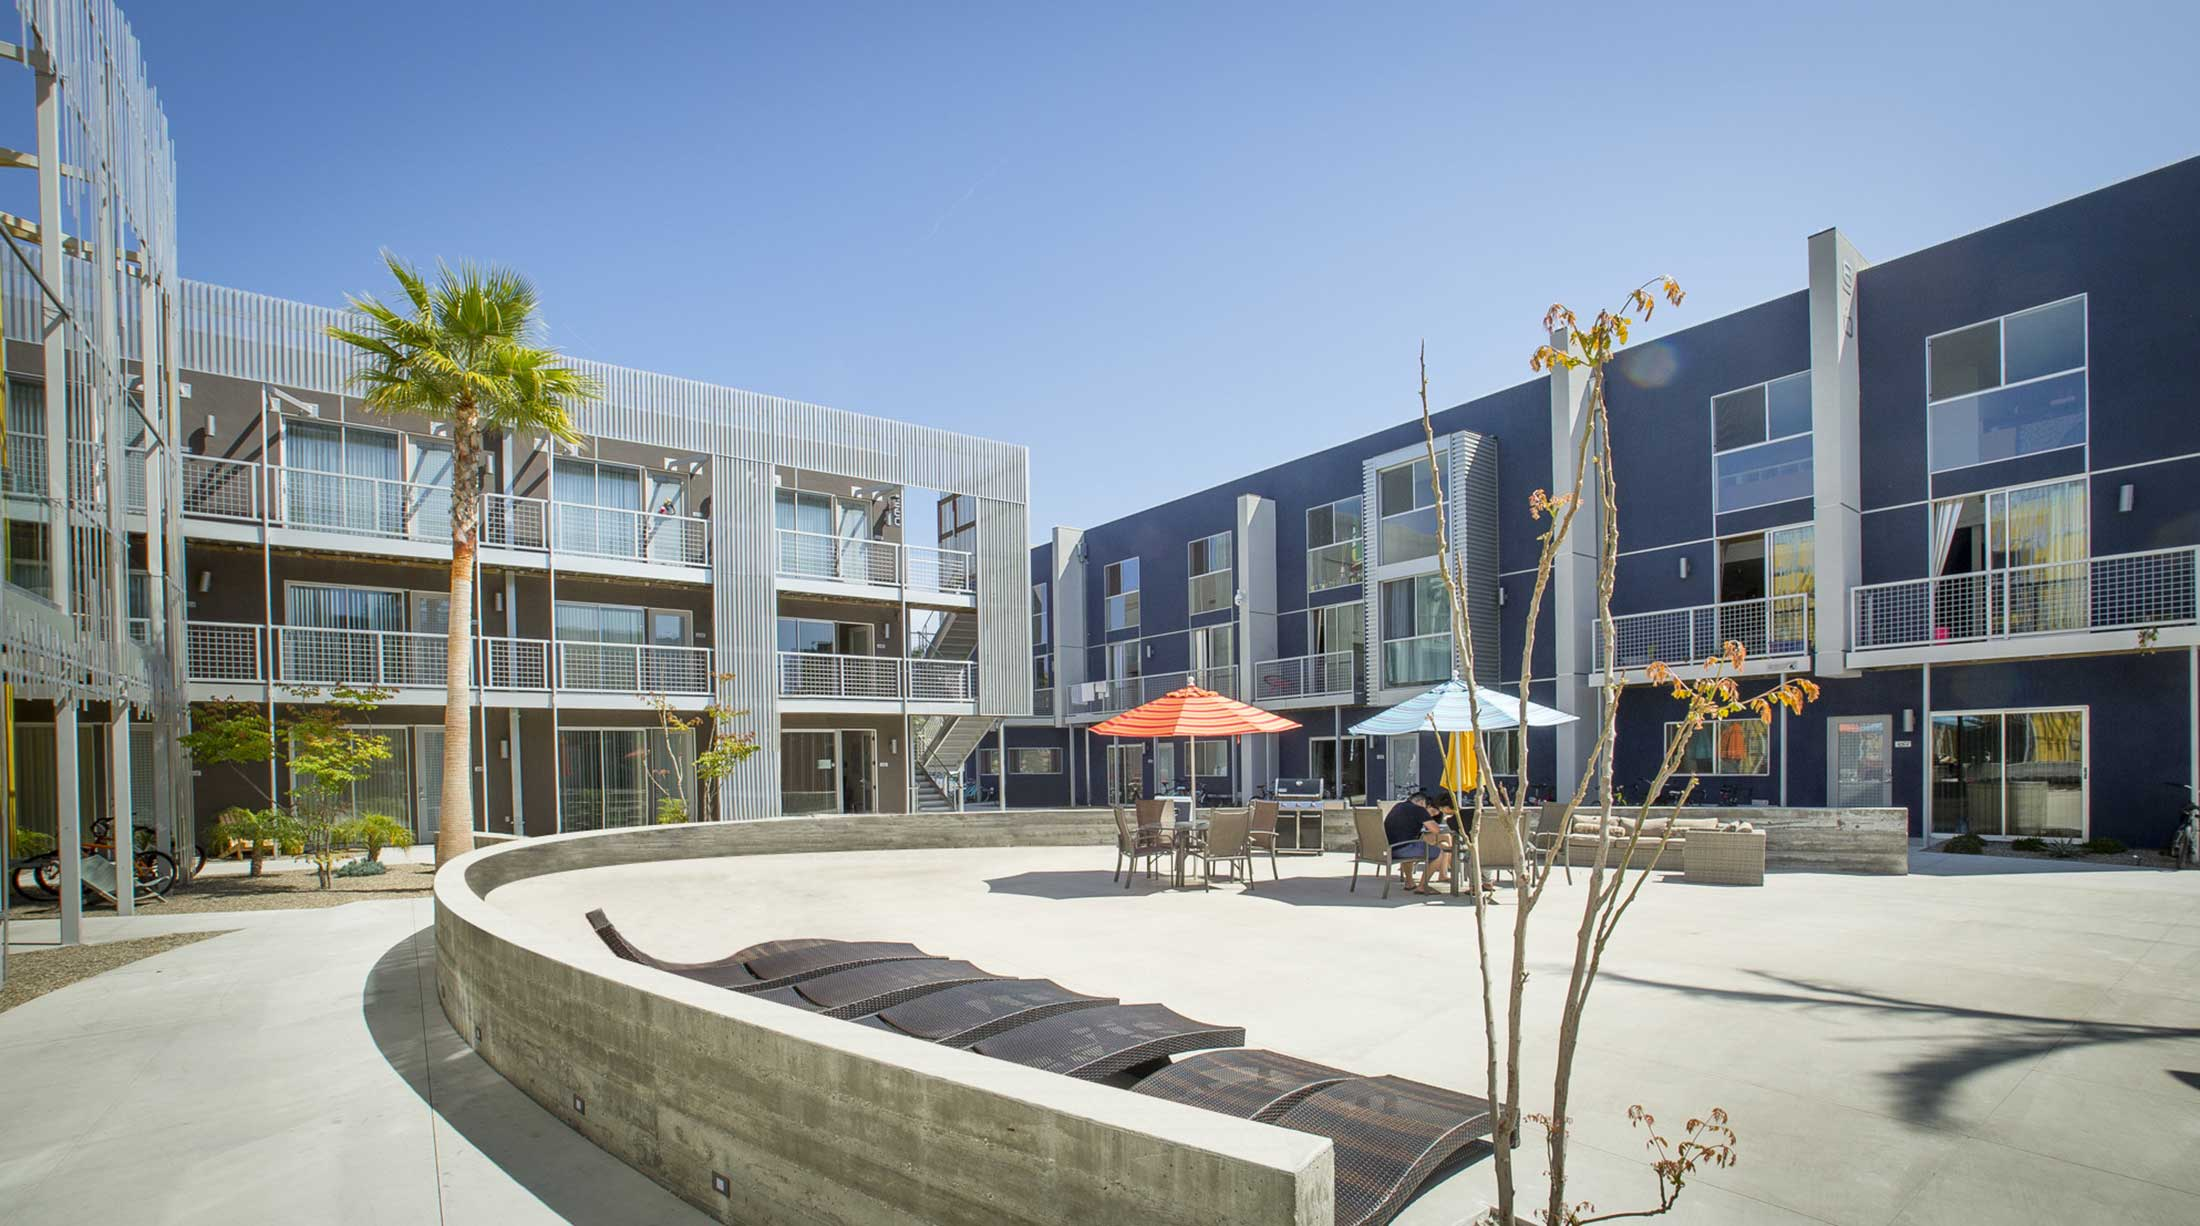 modern-architecture-building-multi-family-sustainable-california-shubindonaldson-ivhousing-15